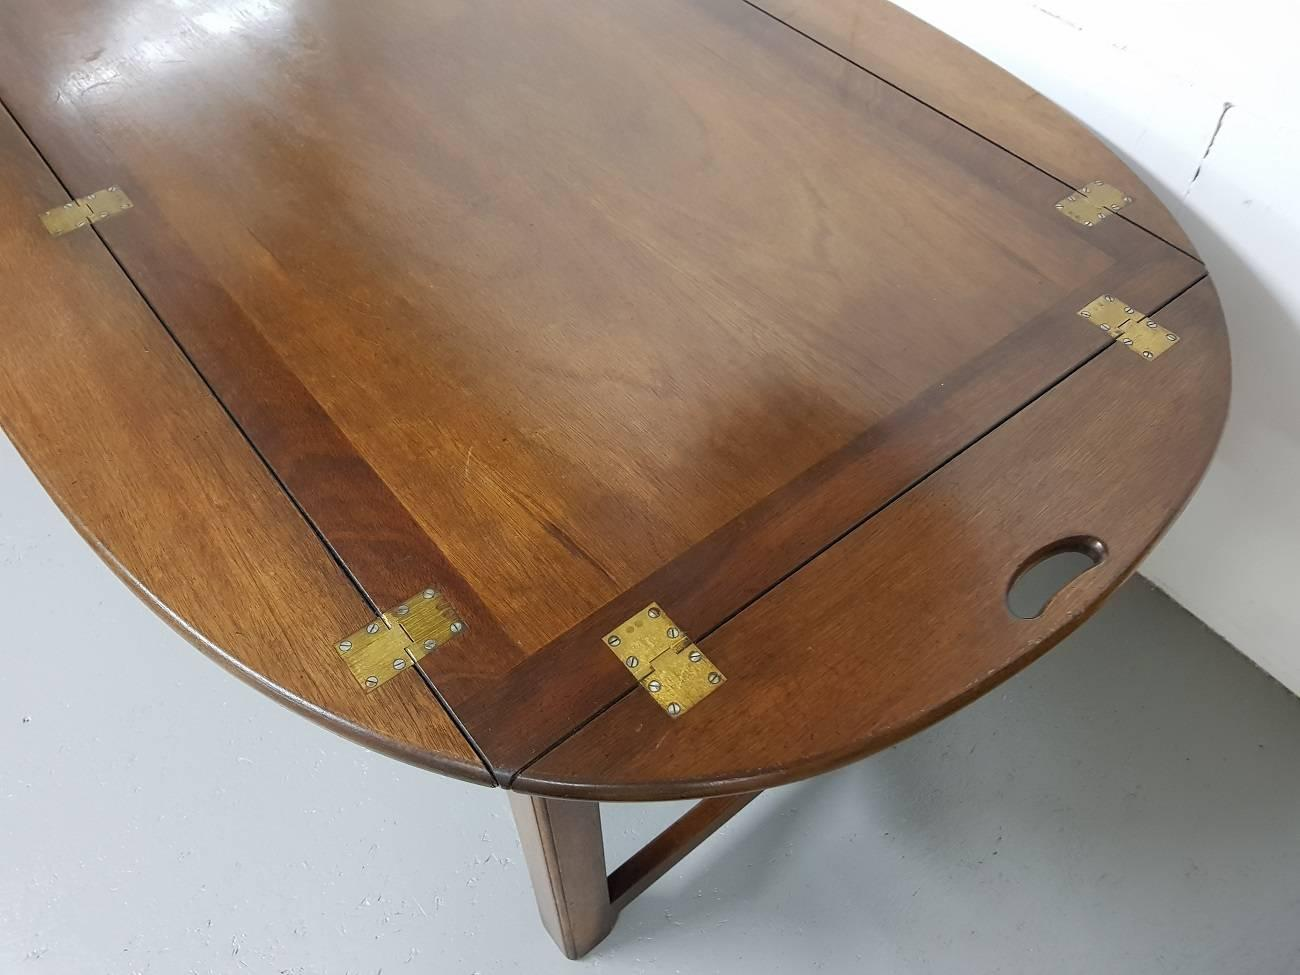 British 20th English Chippendale Style Mahogany Butleru0027s Tray Table For Sale